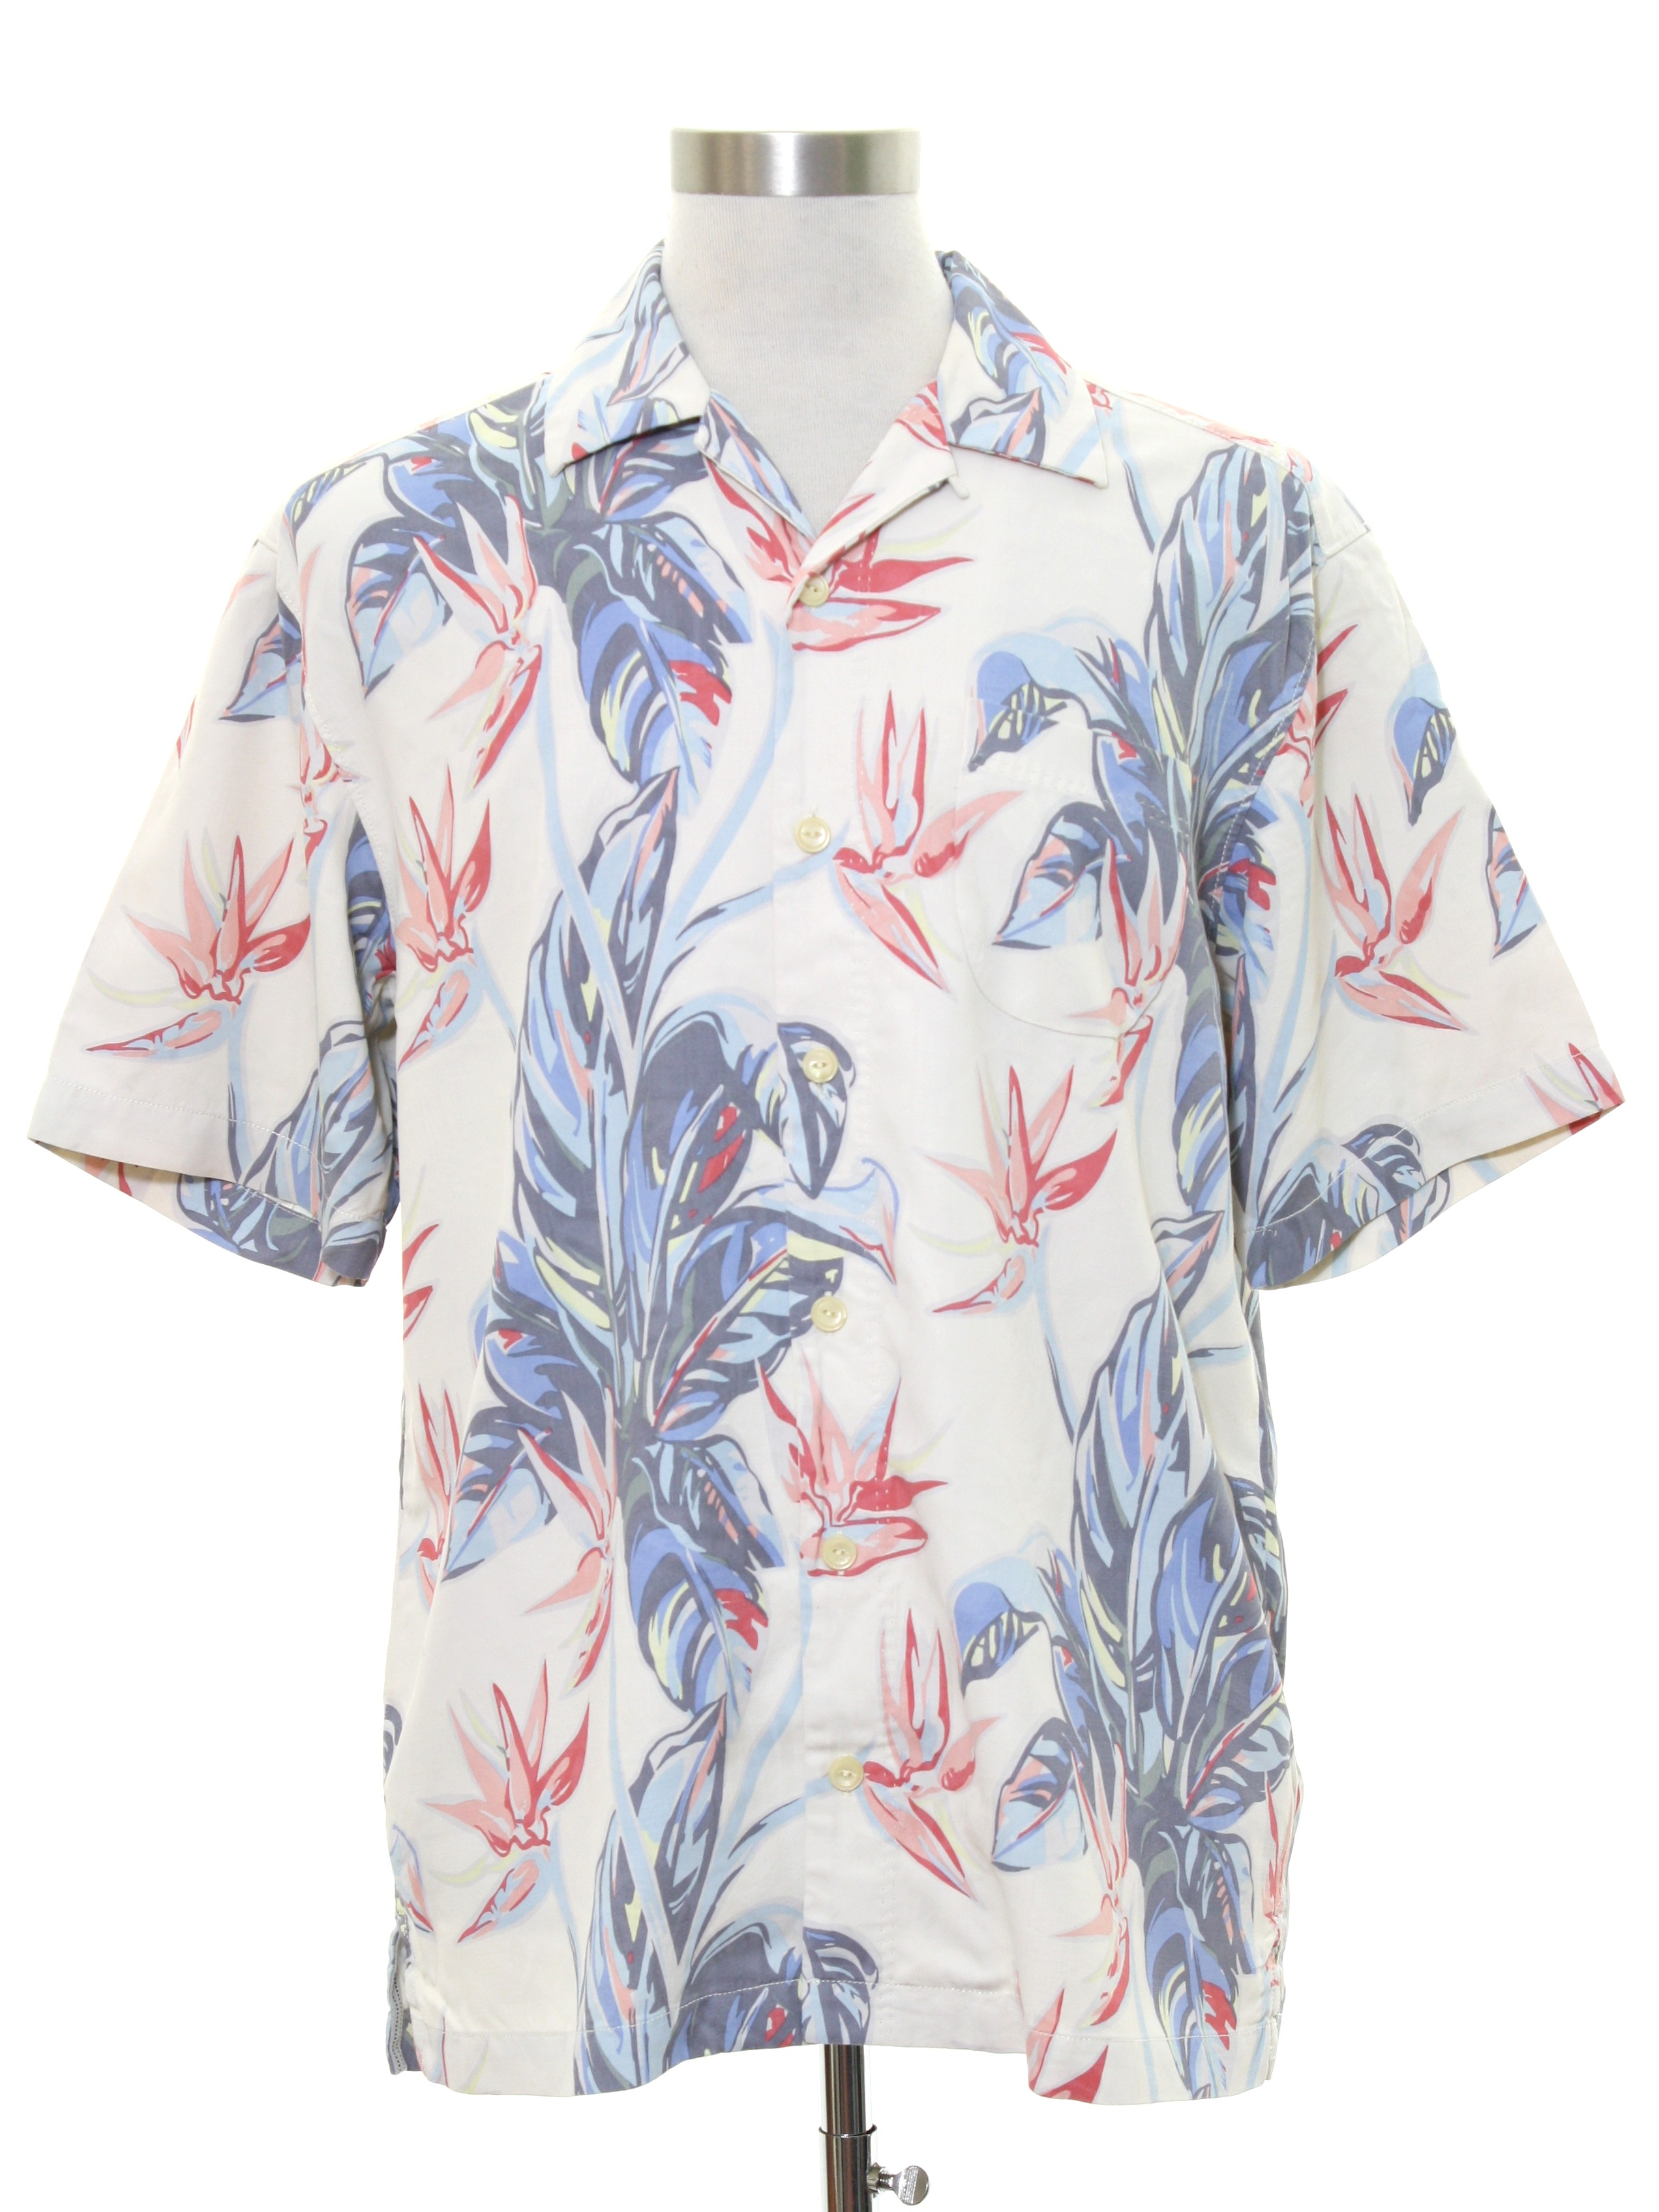 5bccb318 Hawaiian Shirt: 90s -Tommy Bahama- Mens winter white background silk short  sleeve hawaiian shirt. Classic style in a large tropical floral and foliage  print ...